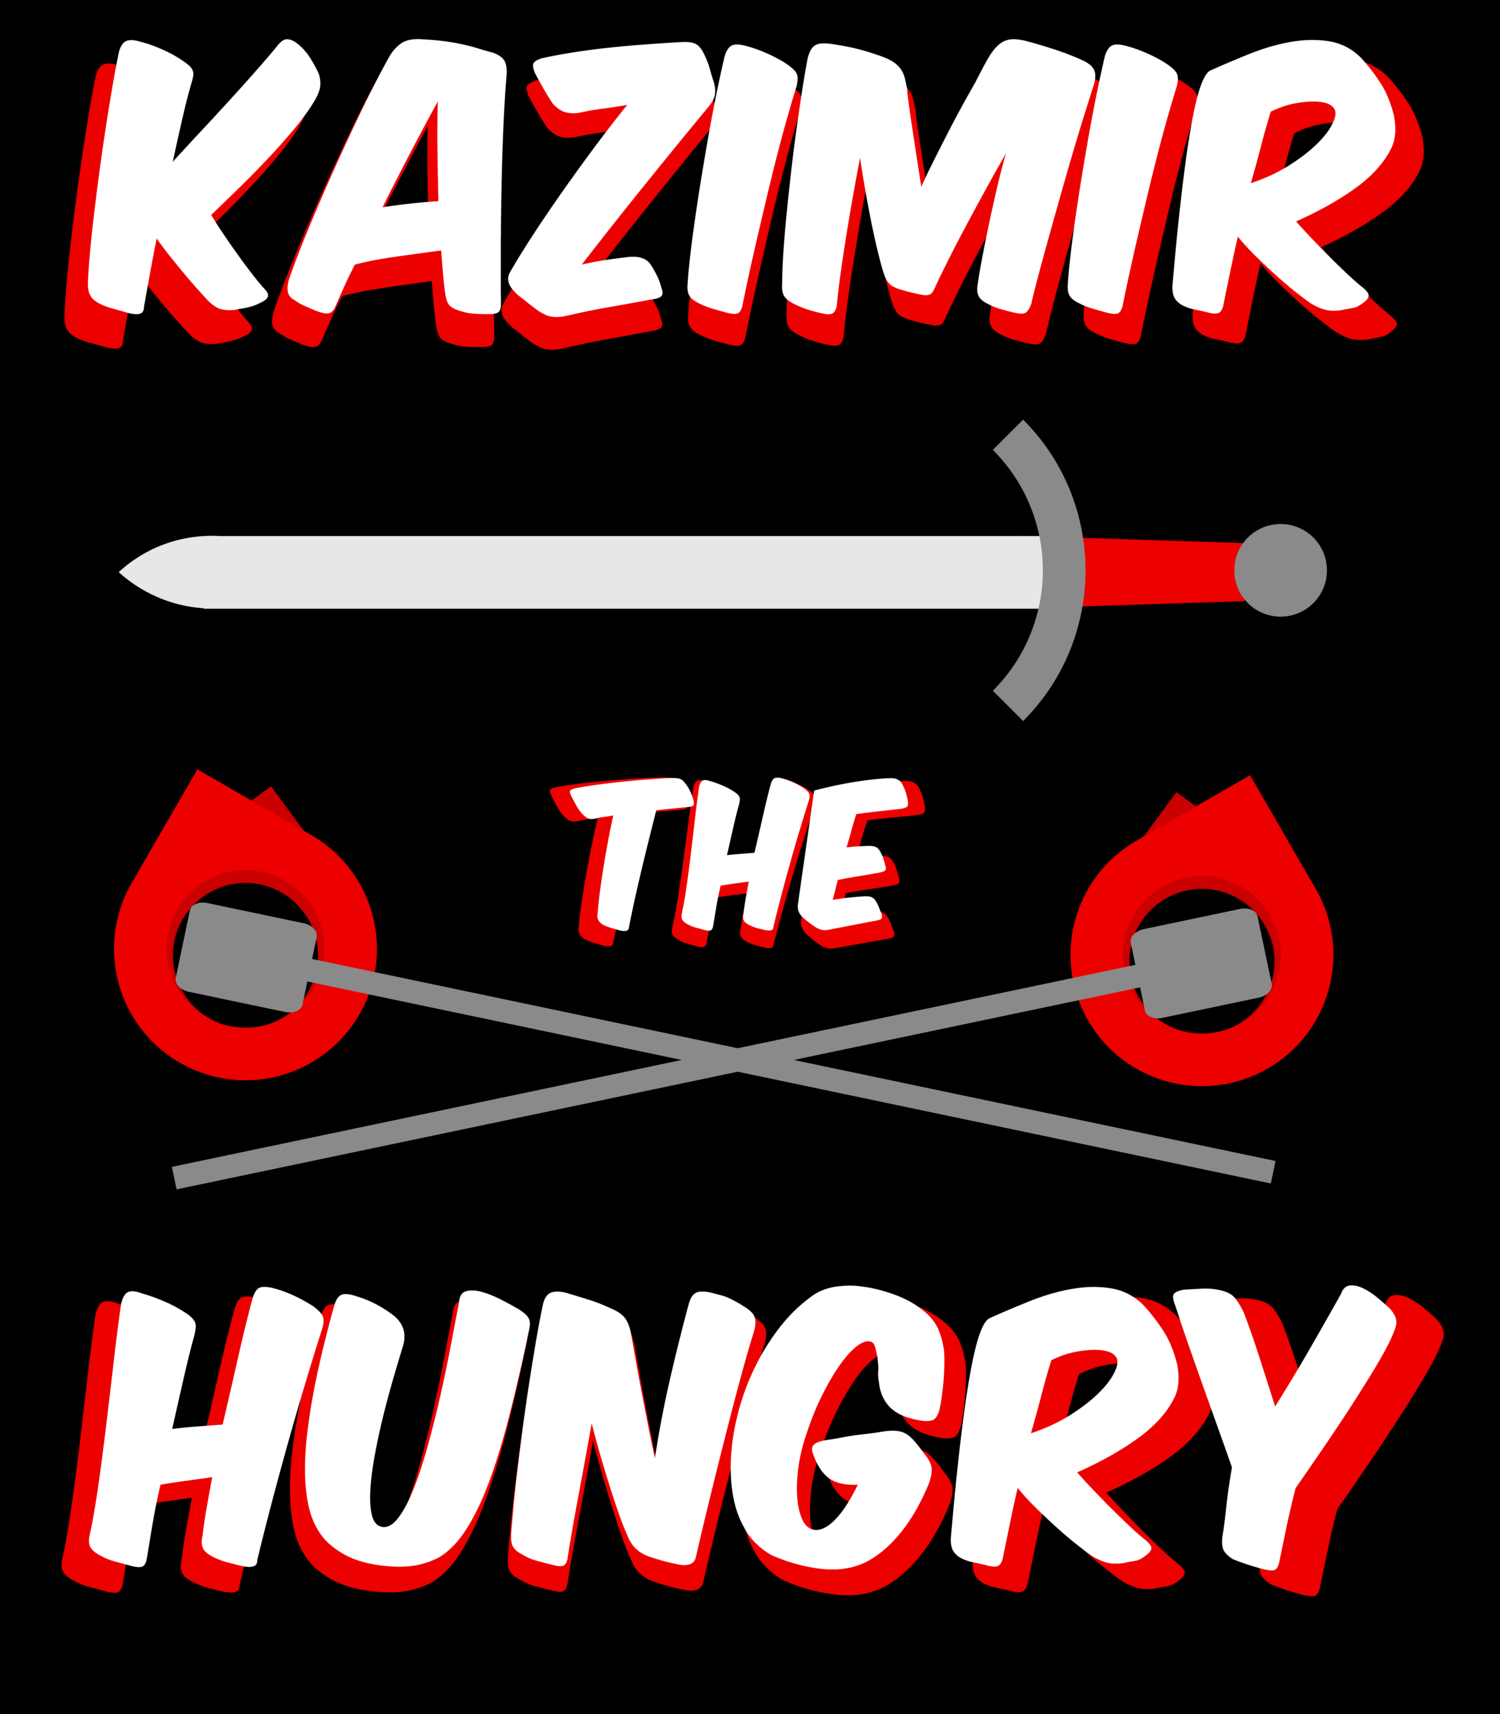 Kazimir the Hungry, Sideshow Entertainer